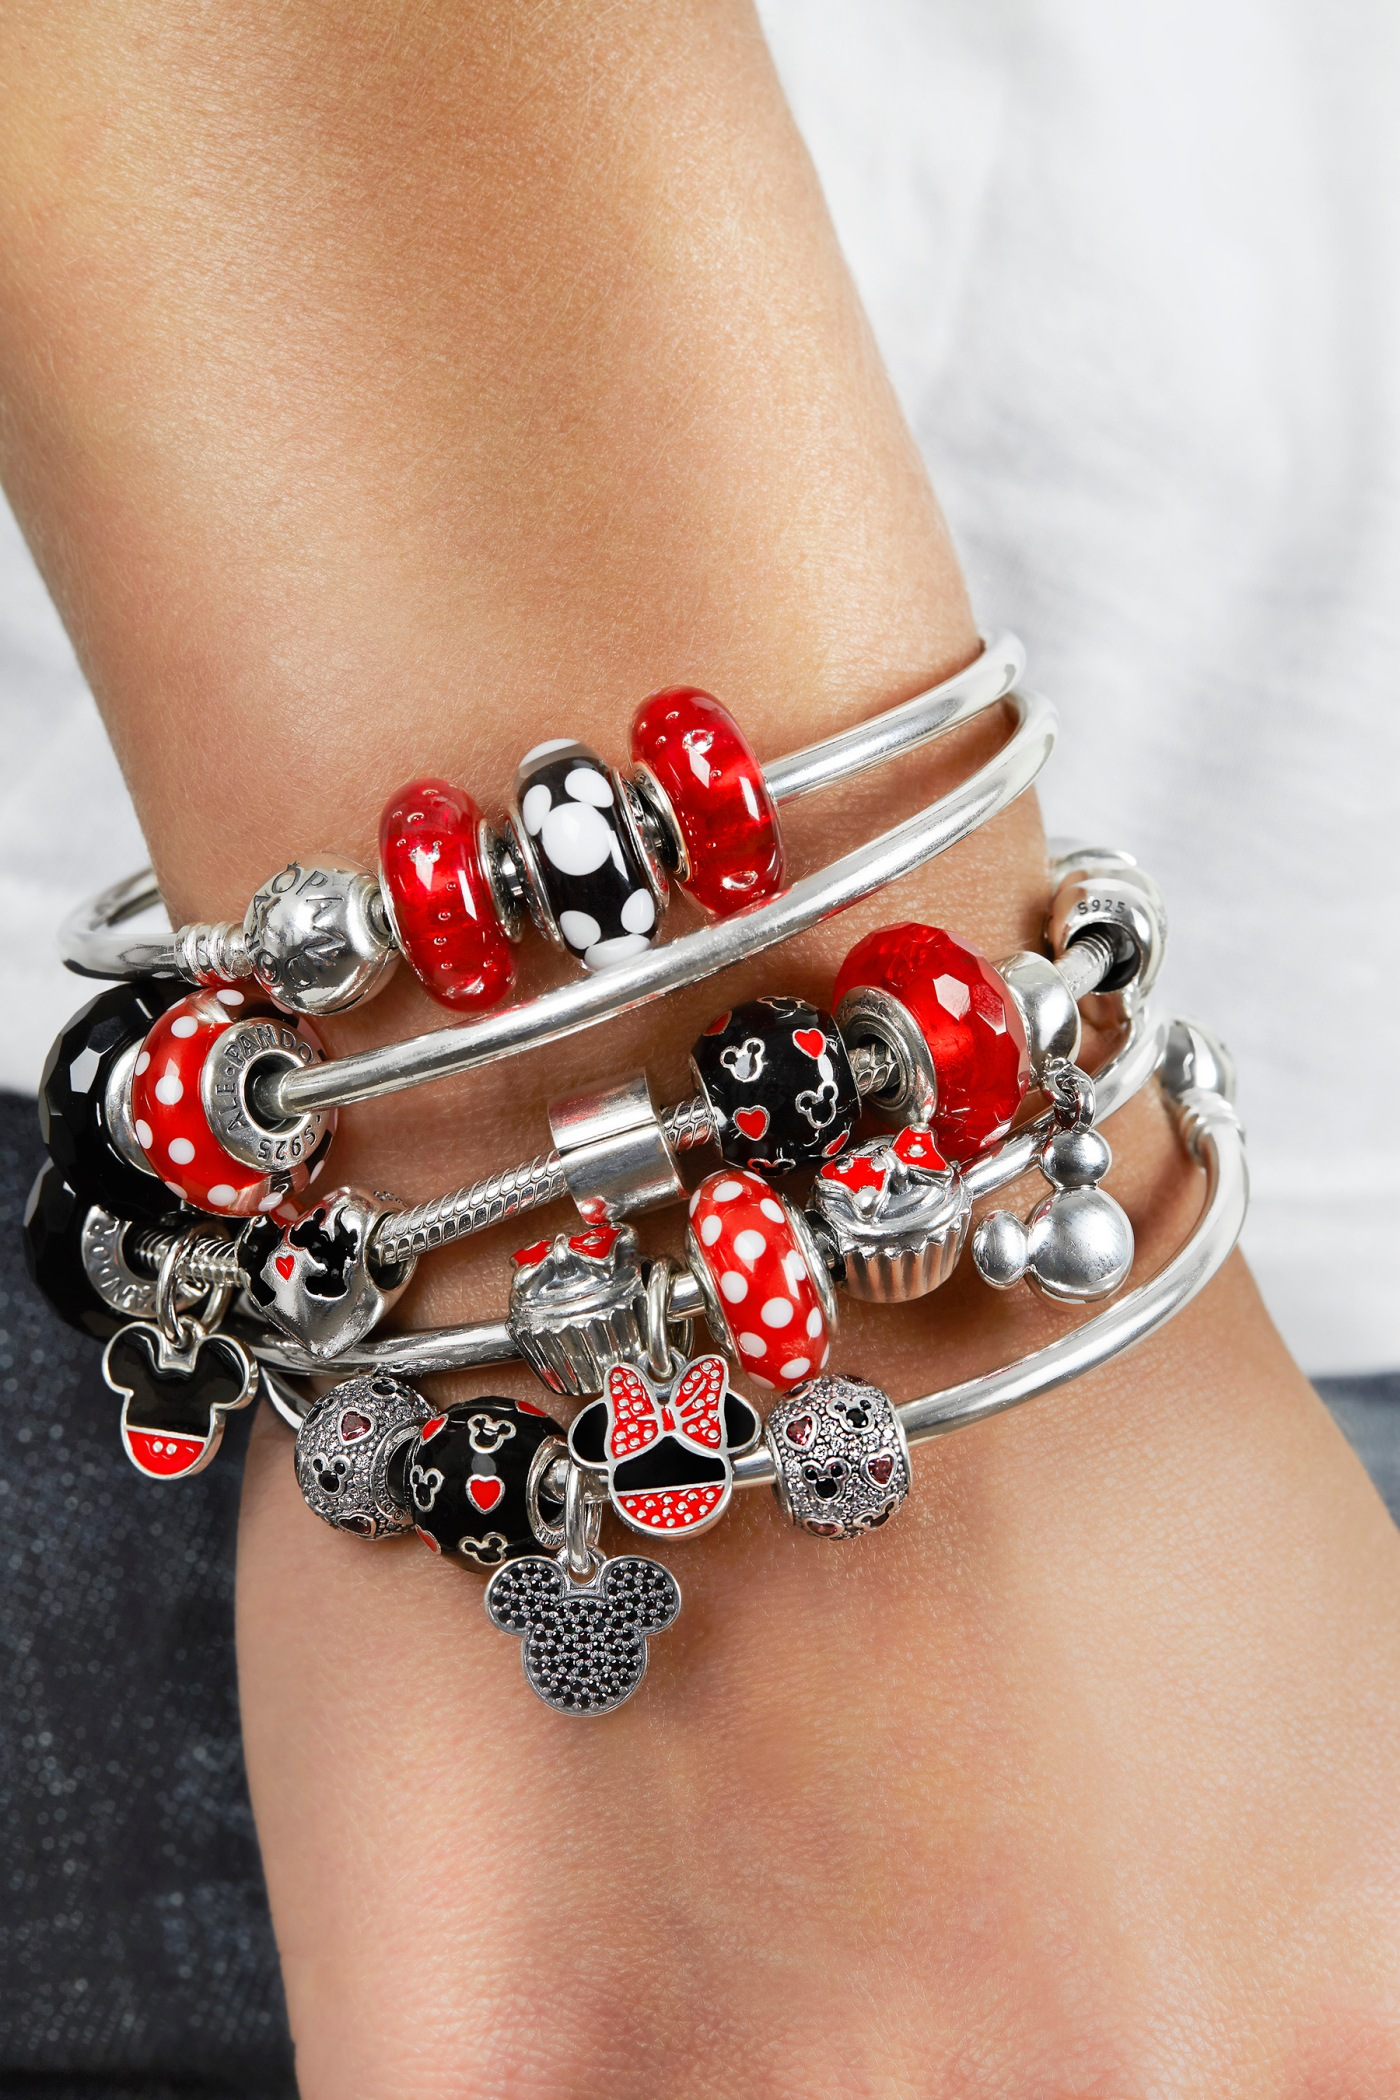 charms specials bracelets index bangles bangle on pandora media bracelet website